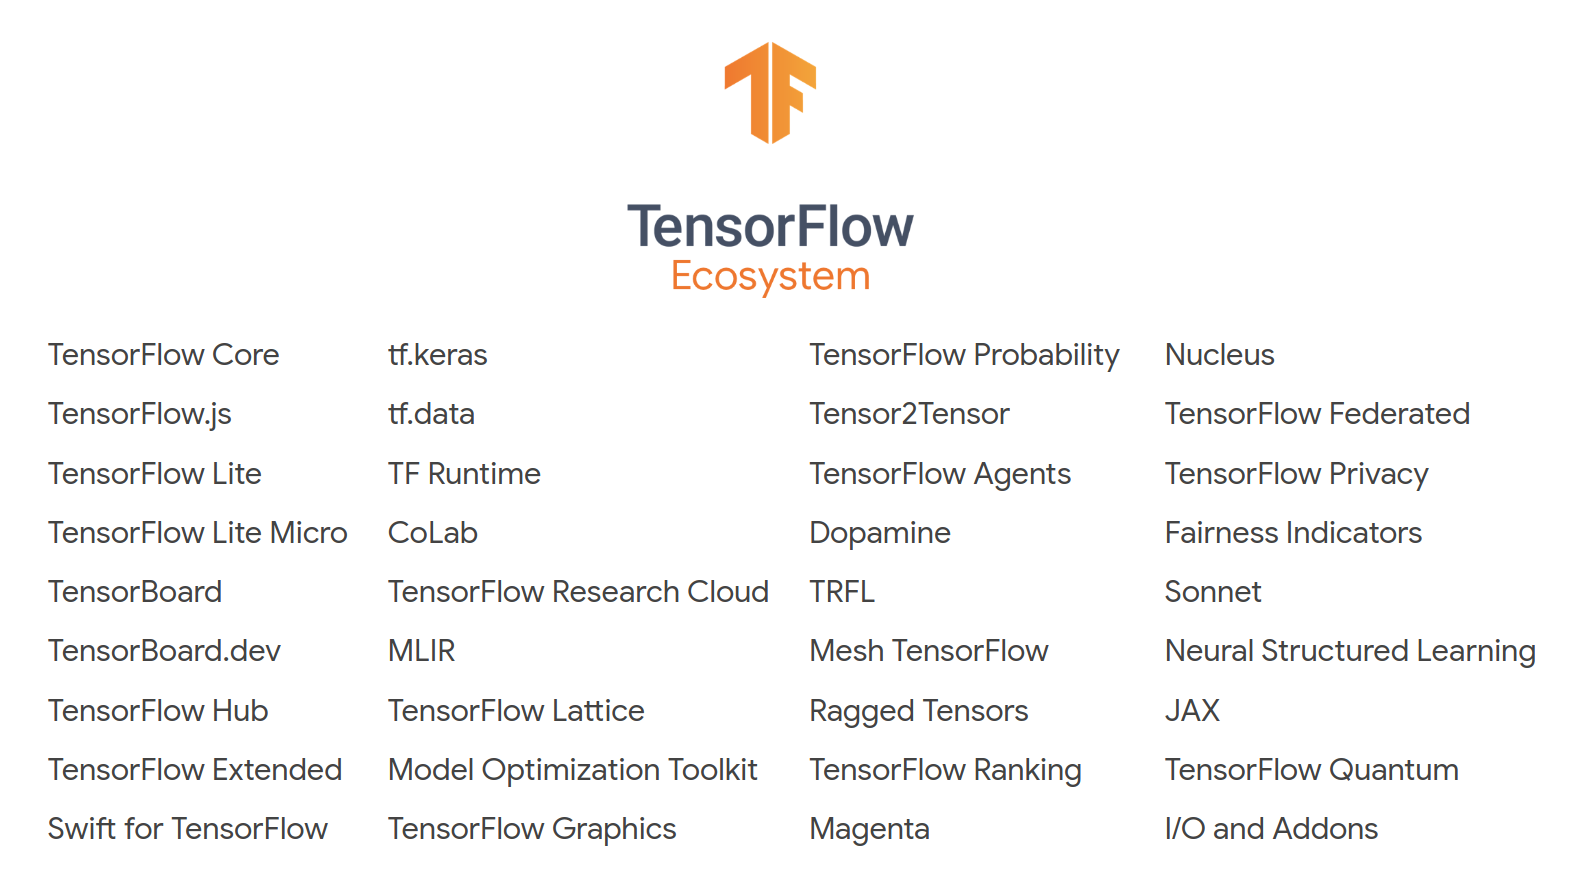 List of services and products from TensorFlow ecosystem